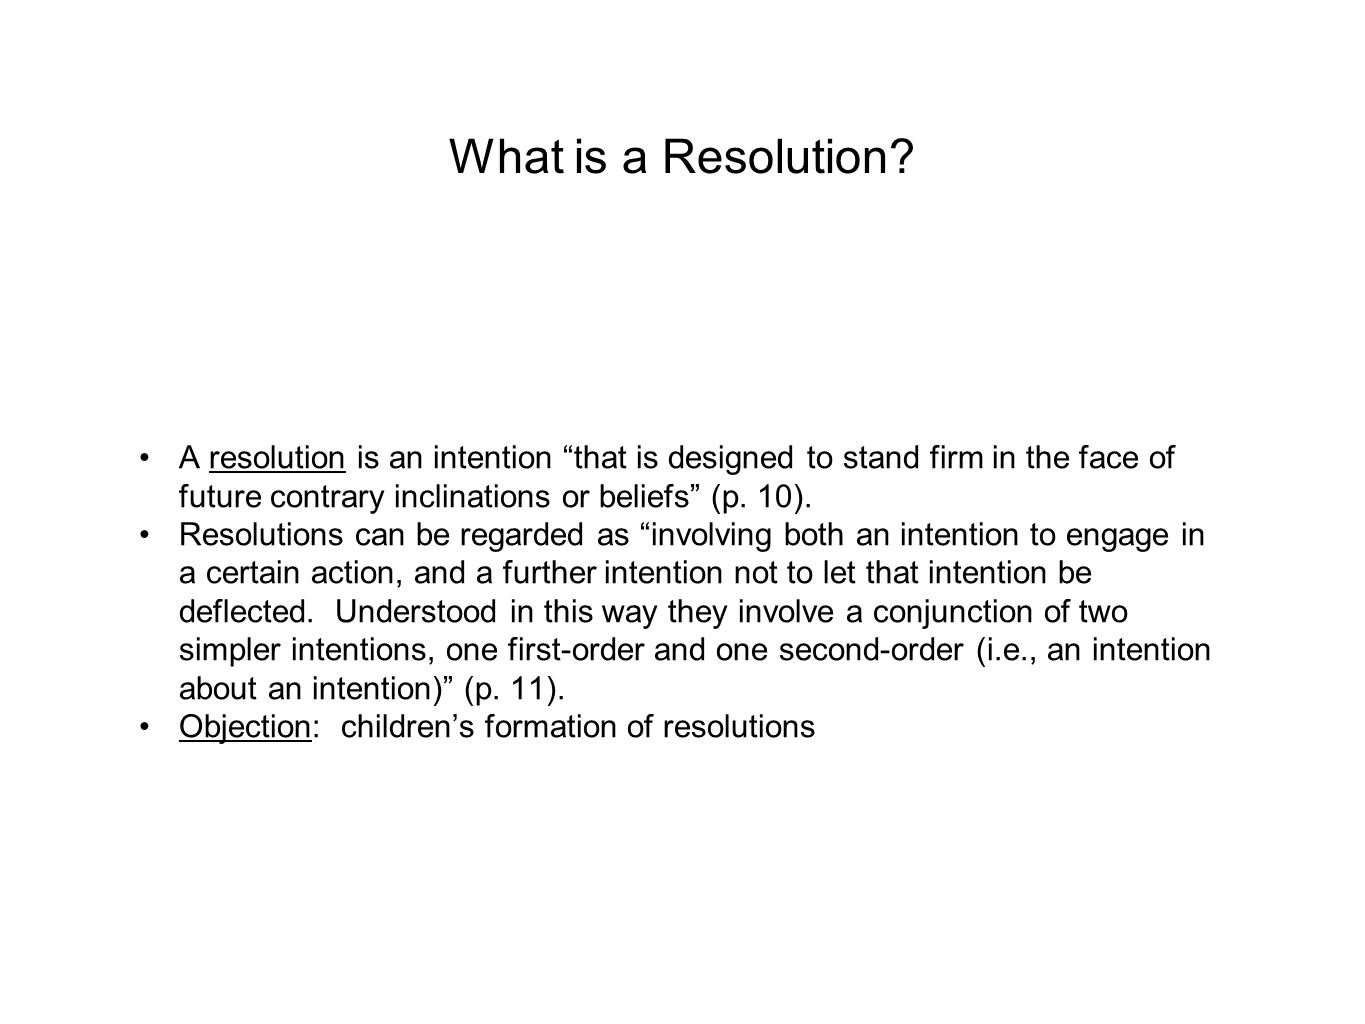 What is a Resolution A resolution is an intention that is designed to stand firm in the face of future contrary inclinations or beliefs (p. 10).